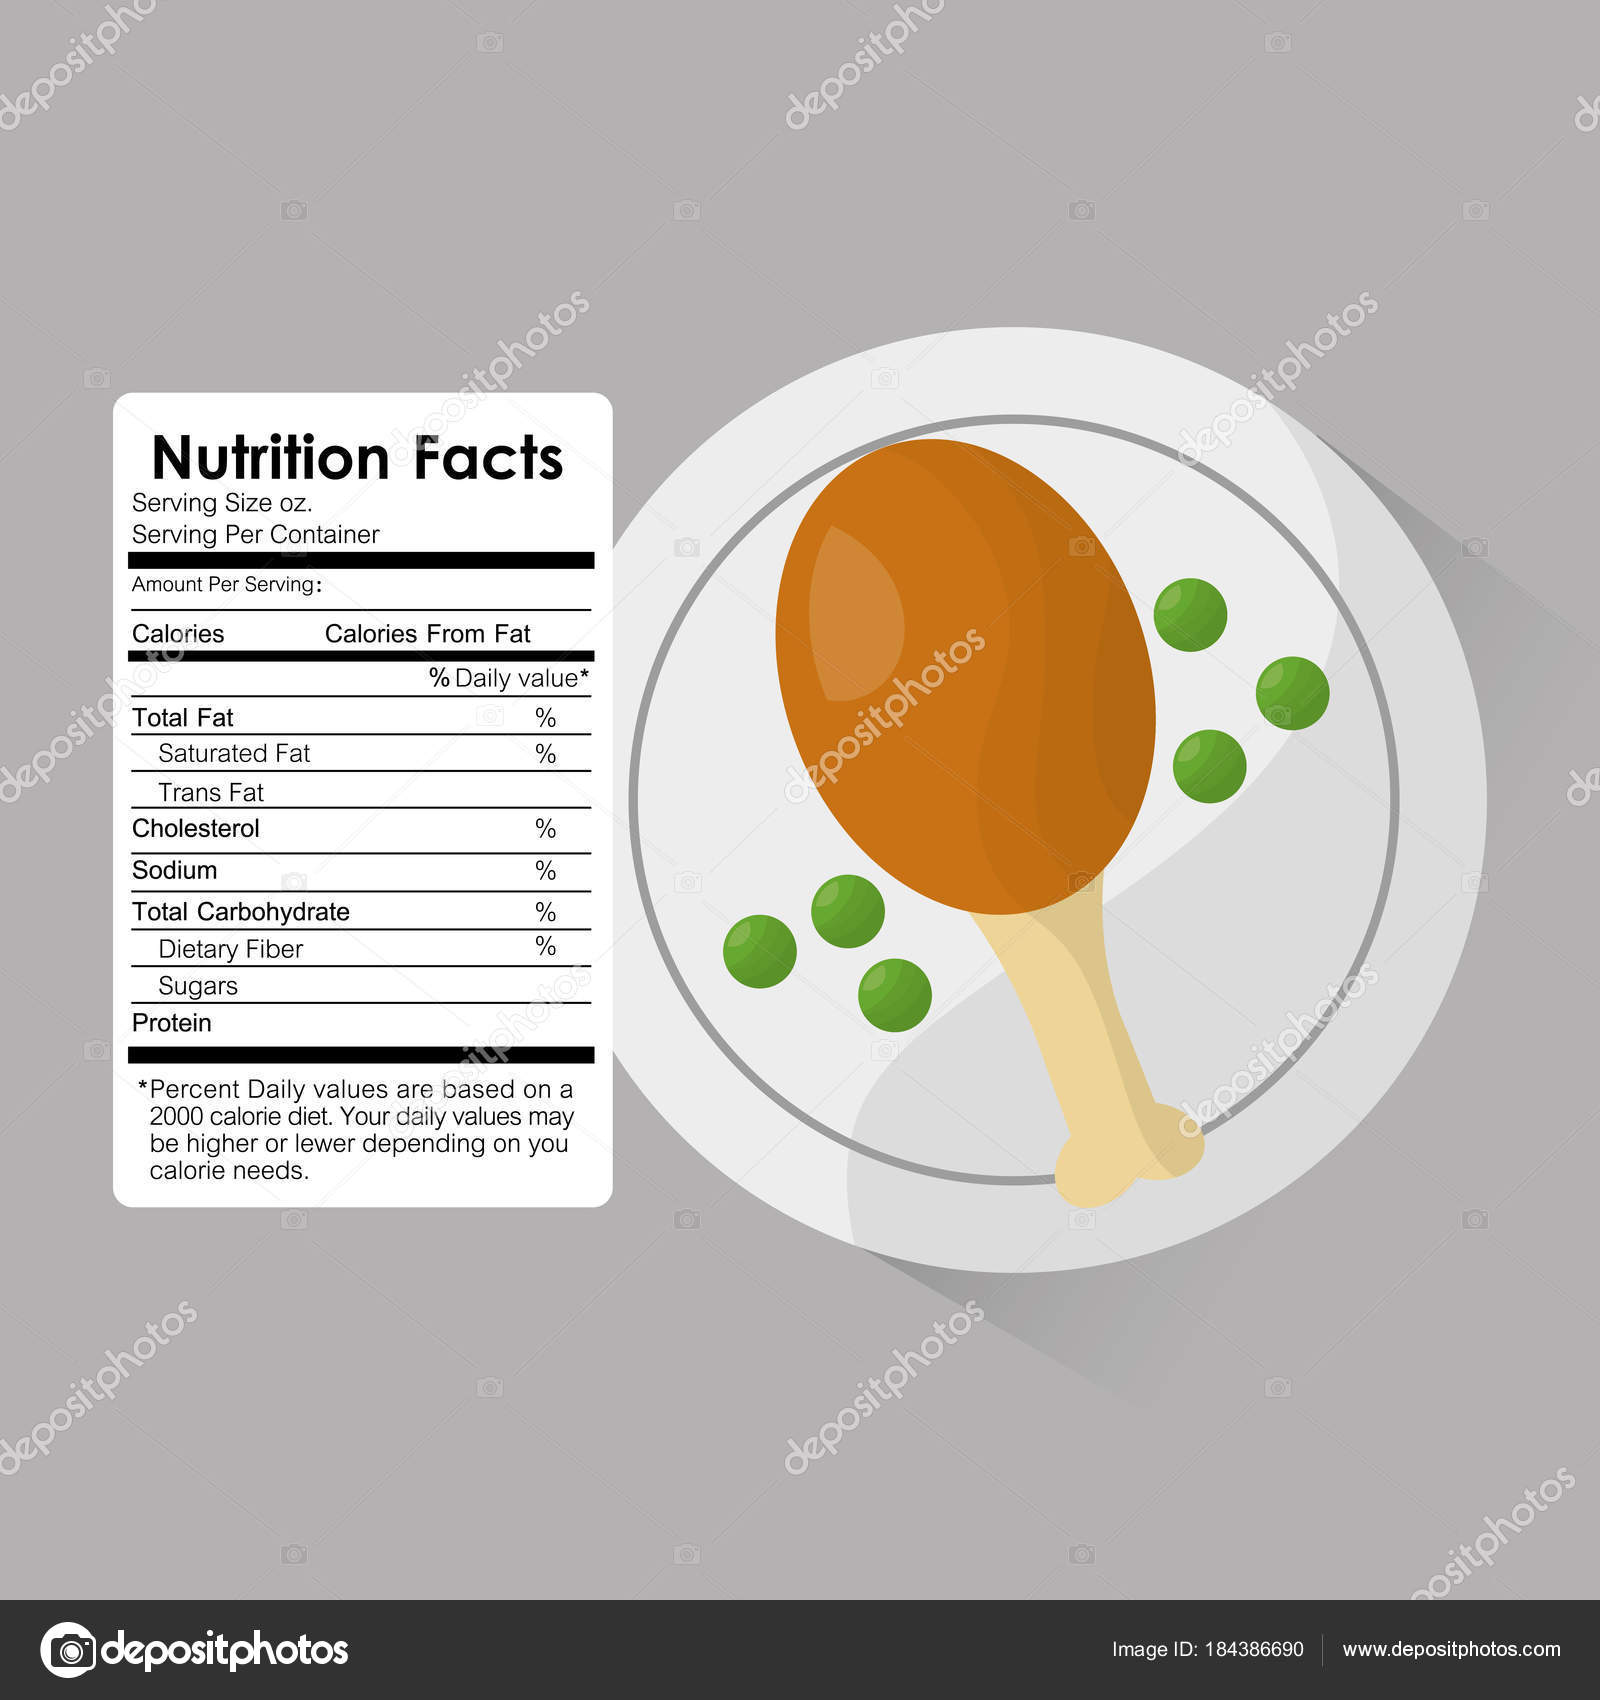 Nutrition facts of roasted chicken and peas label content